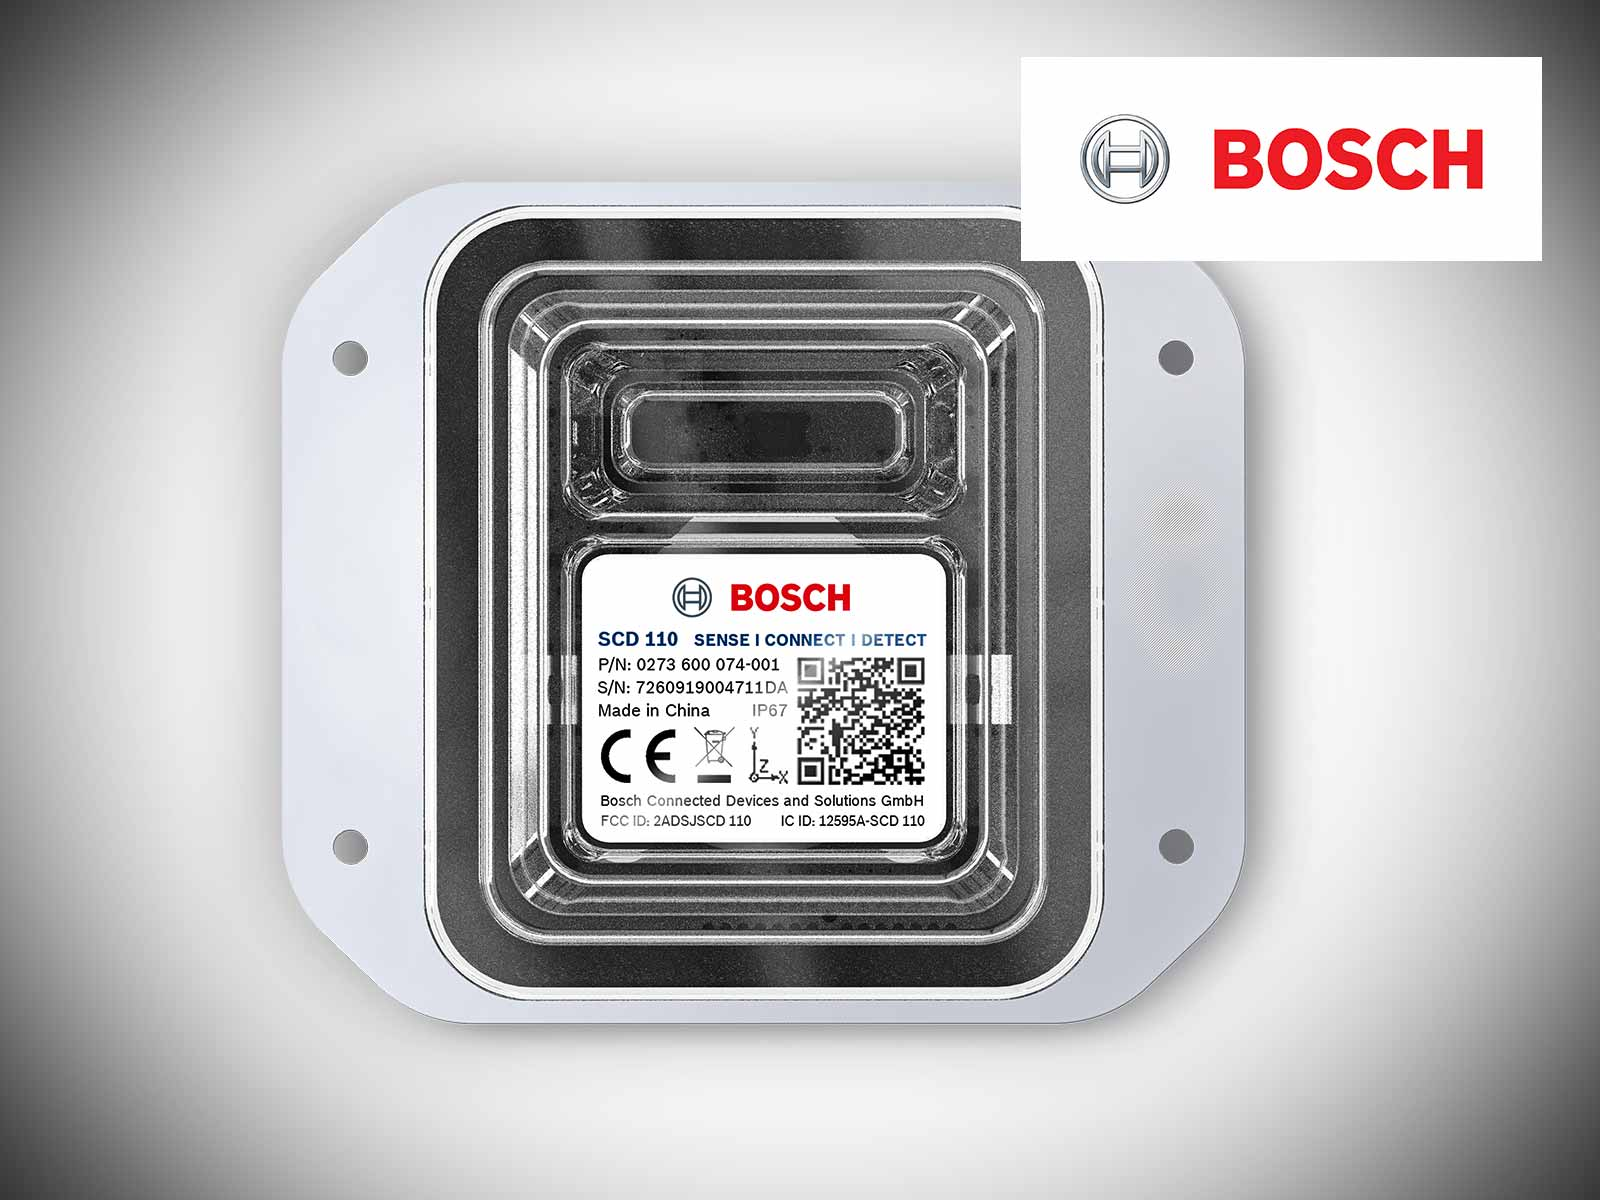 SCD - Sense, Connect, Detect - Bluetooth Sensor Bosch